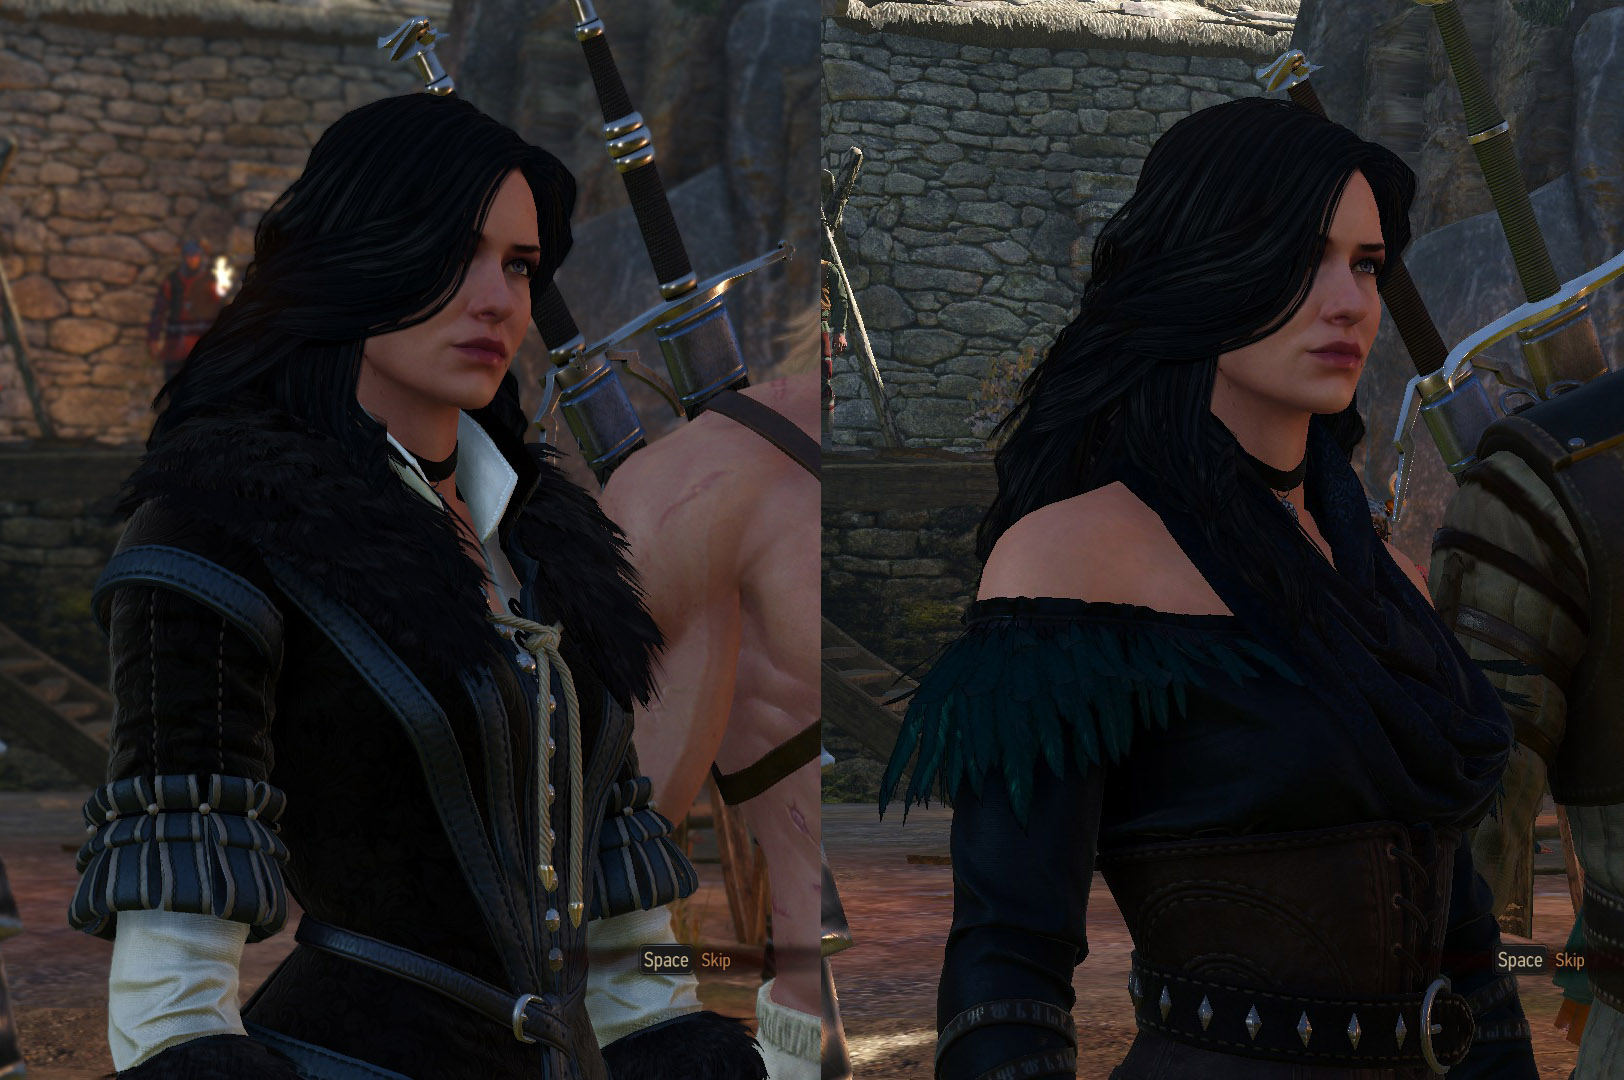 The Witcher 3 Outfits: Alternative Kostüme für Triss und